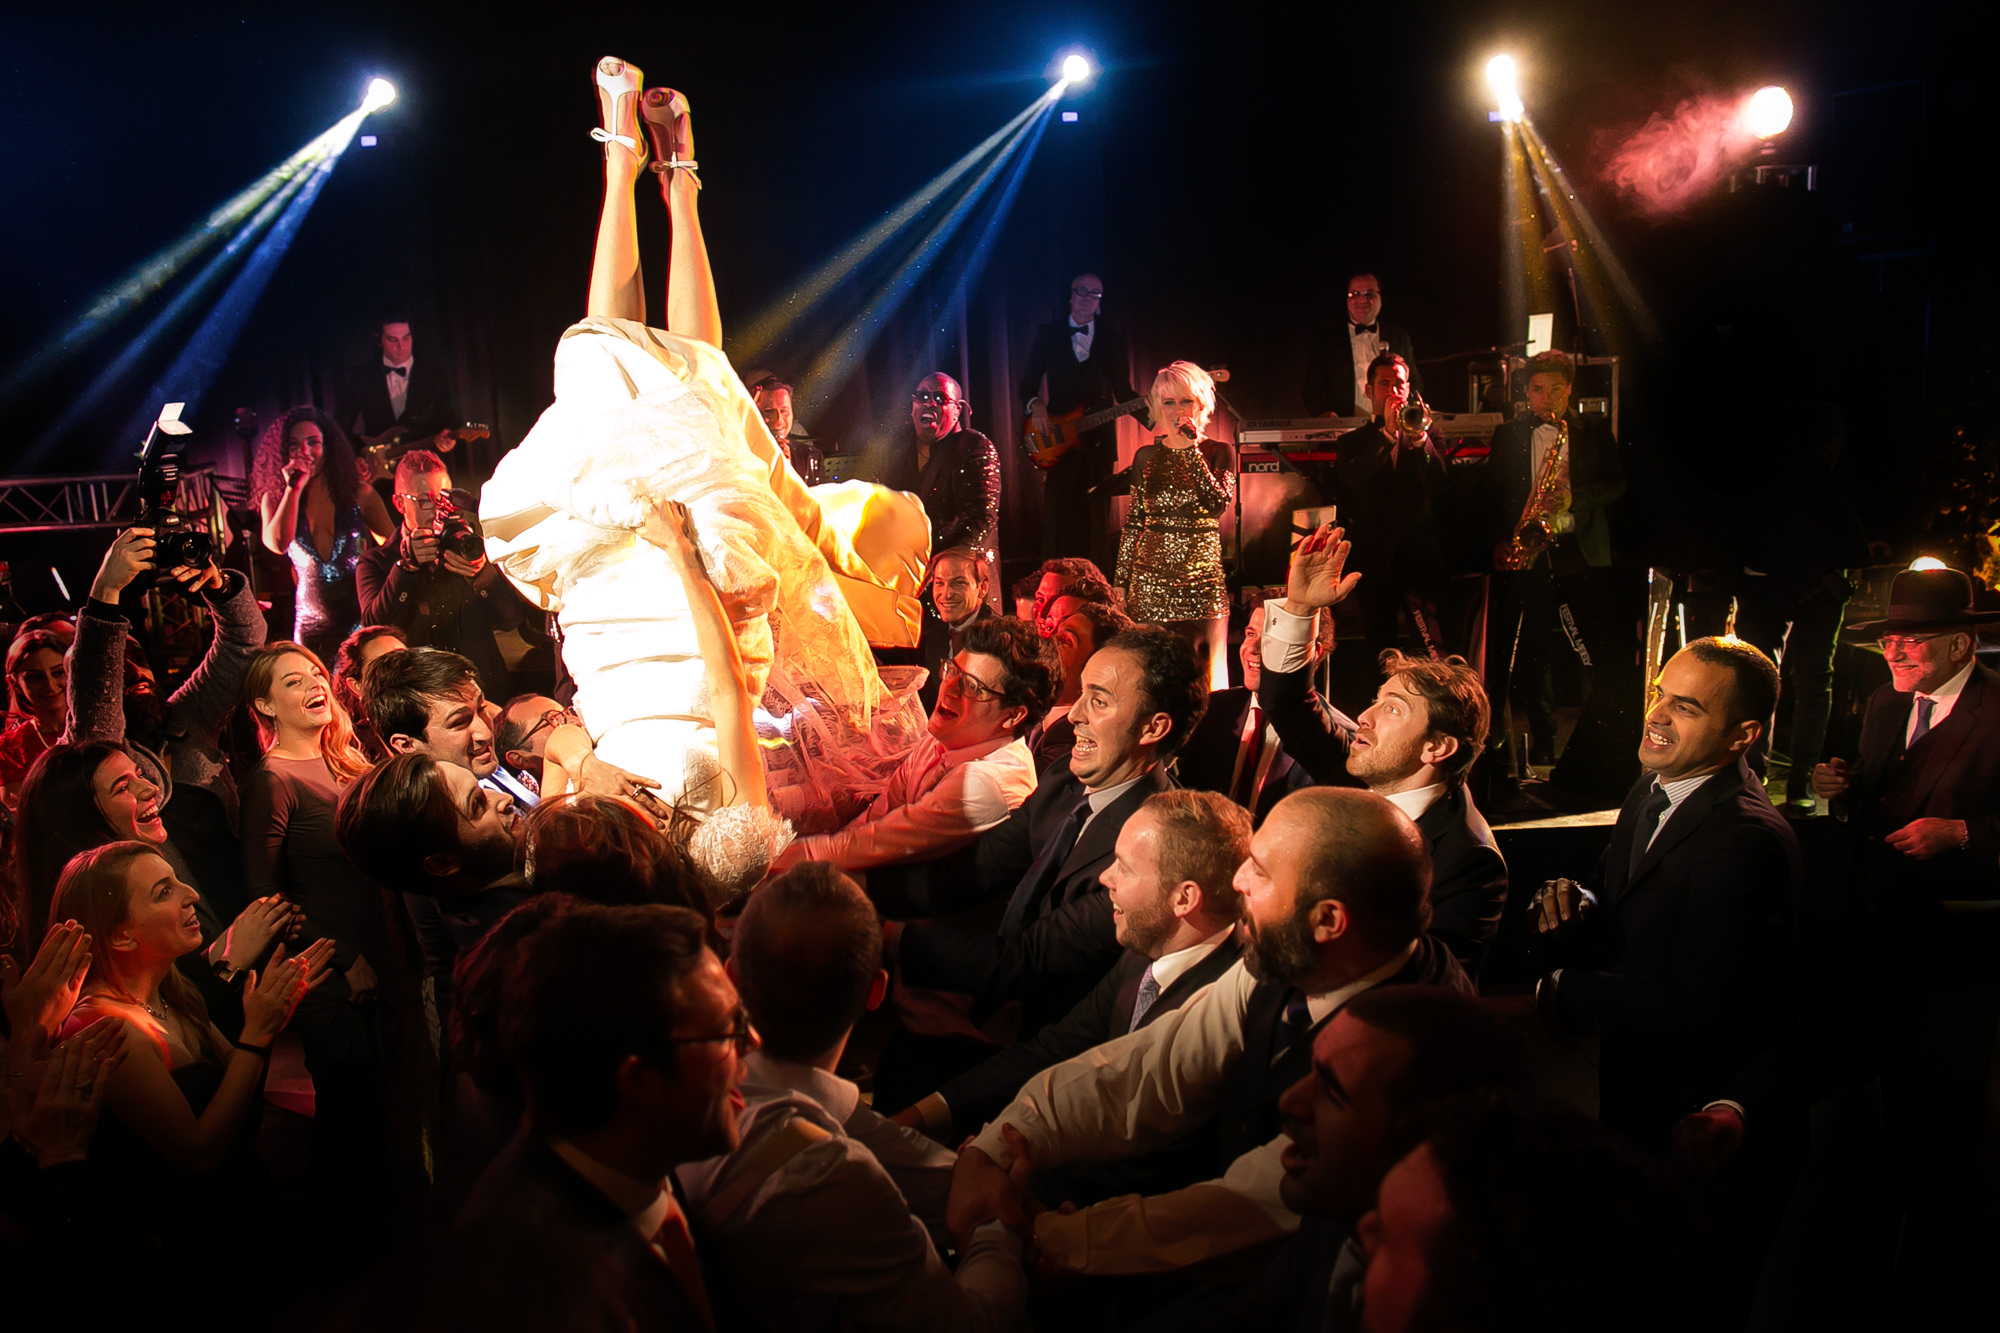 Bride falls through the mosh pit - photo by David Bastianoni